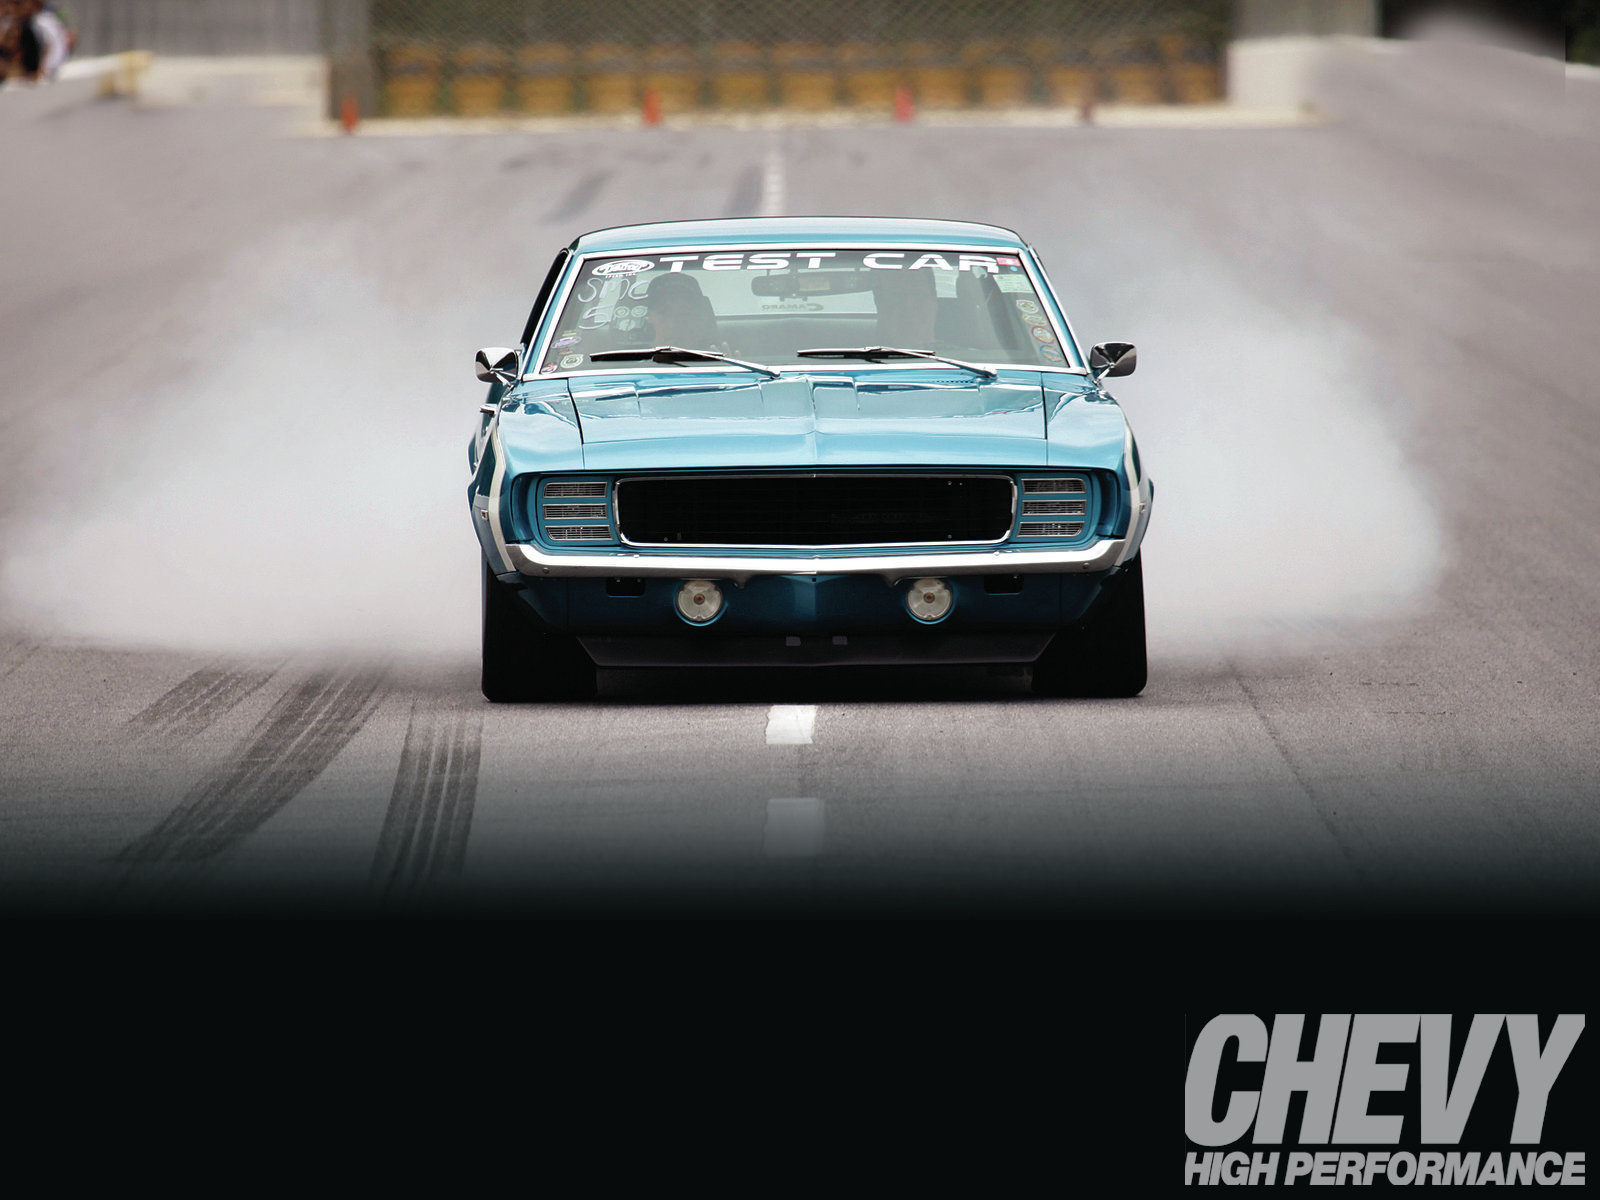 Second Annual Chevy High Performance Street Machine Challenge - Top Tier!